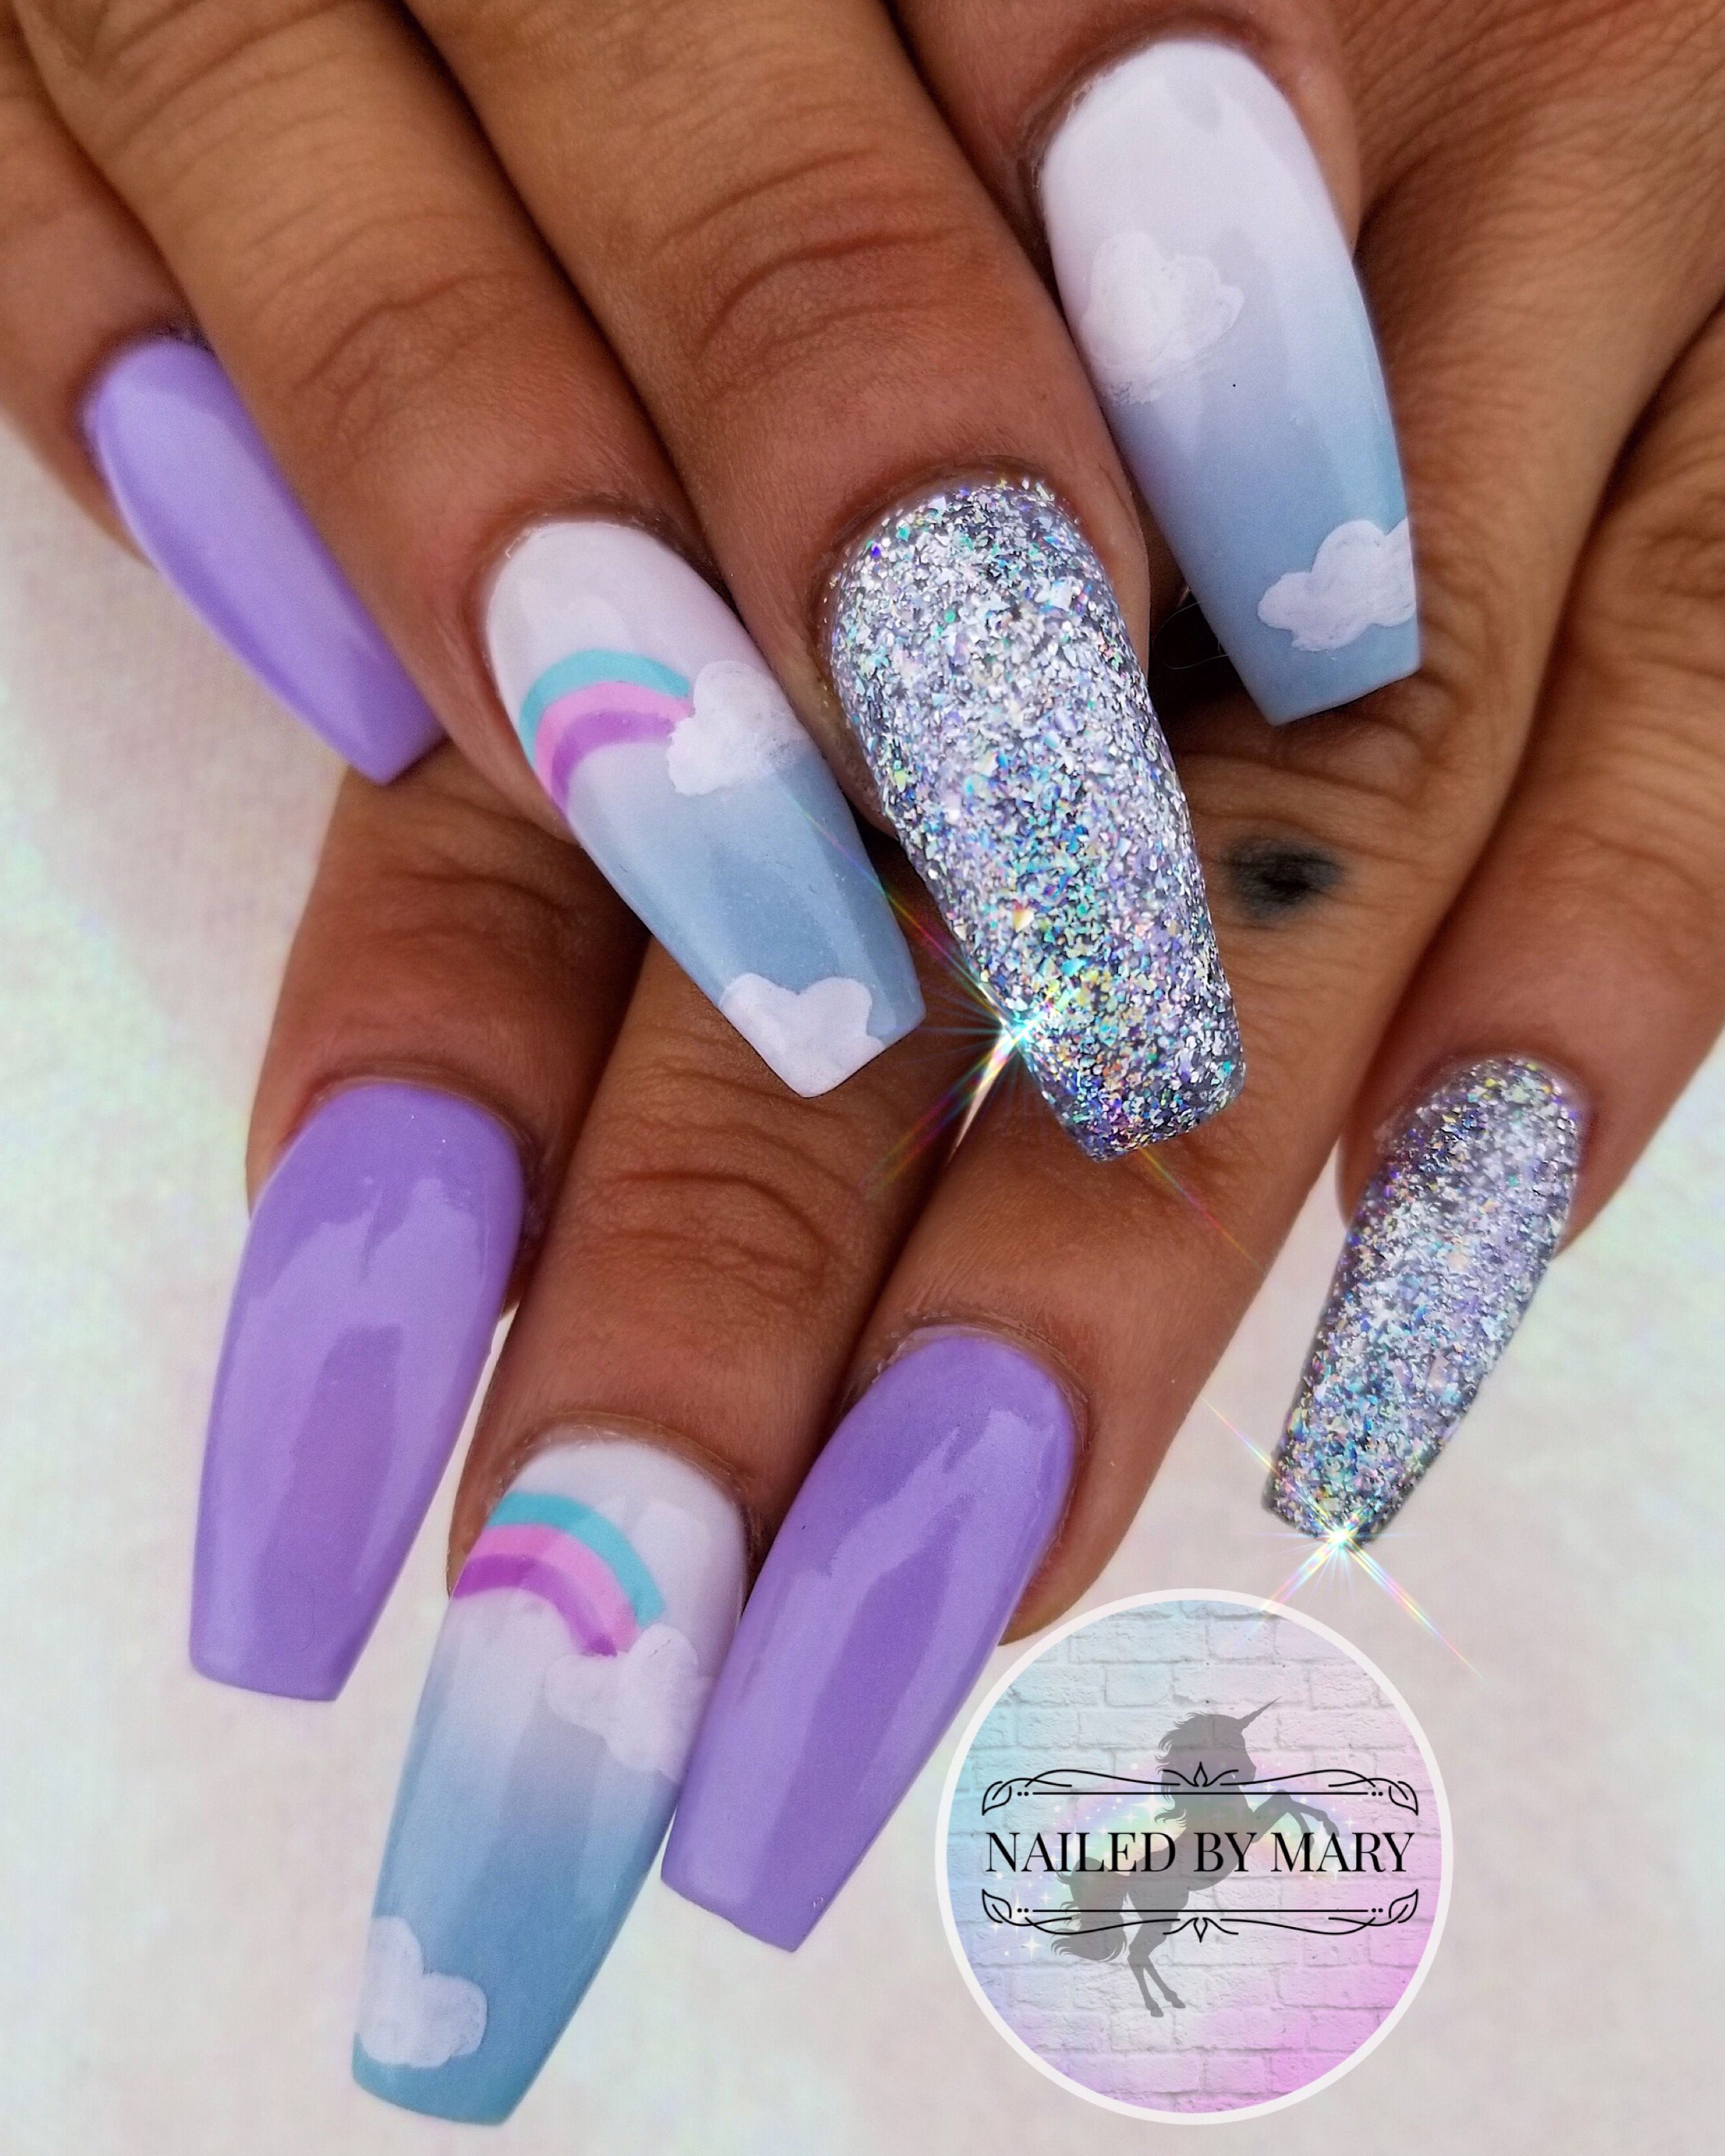 Nails Nailart Cute Nails Love Pastel Rainbow Purple Long Coffin Shape Glitter Hand Painted Acrylic Cute Nails Cute Nail Art Designs Coffin Nails Designs